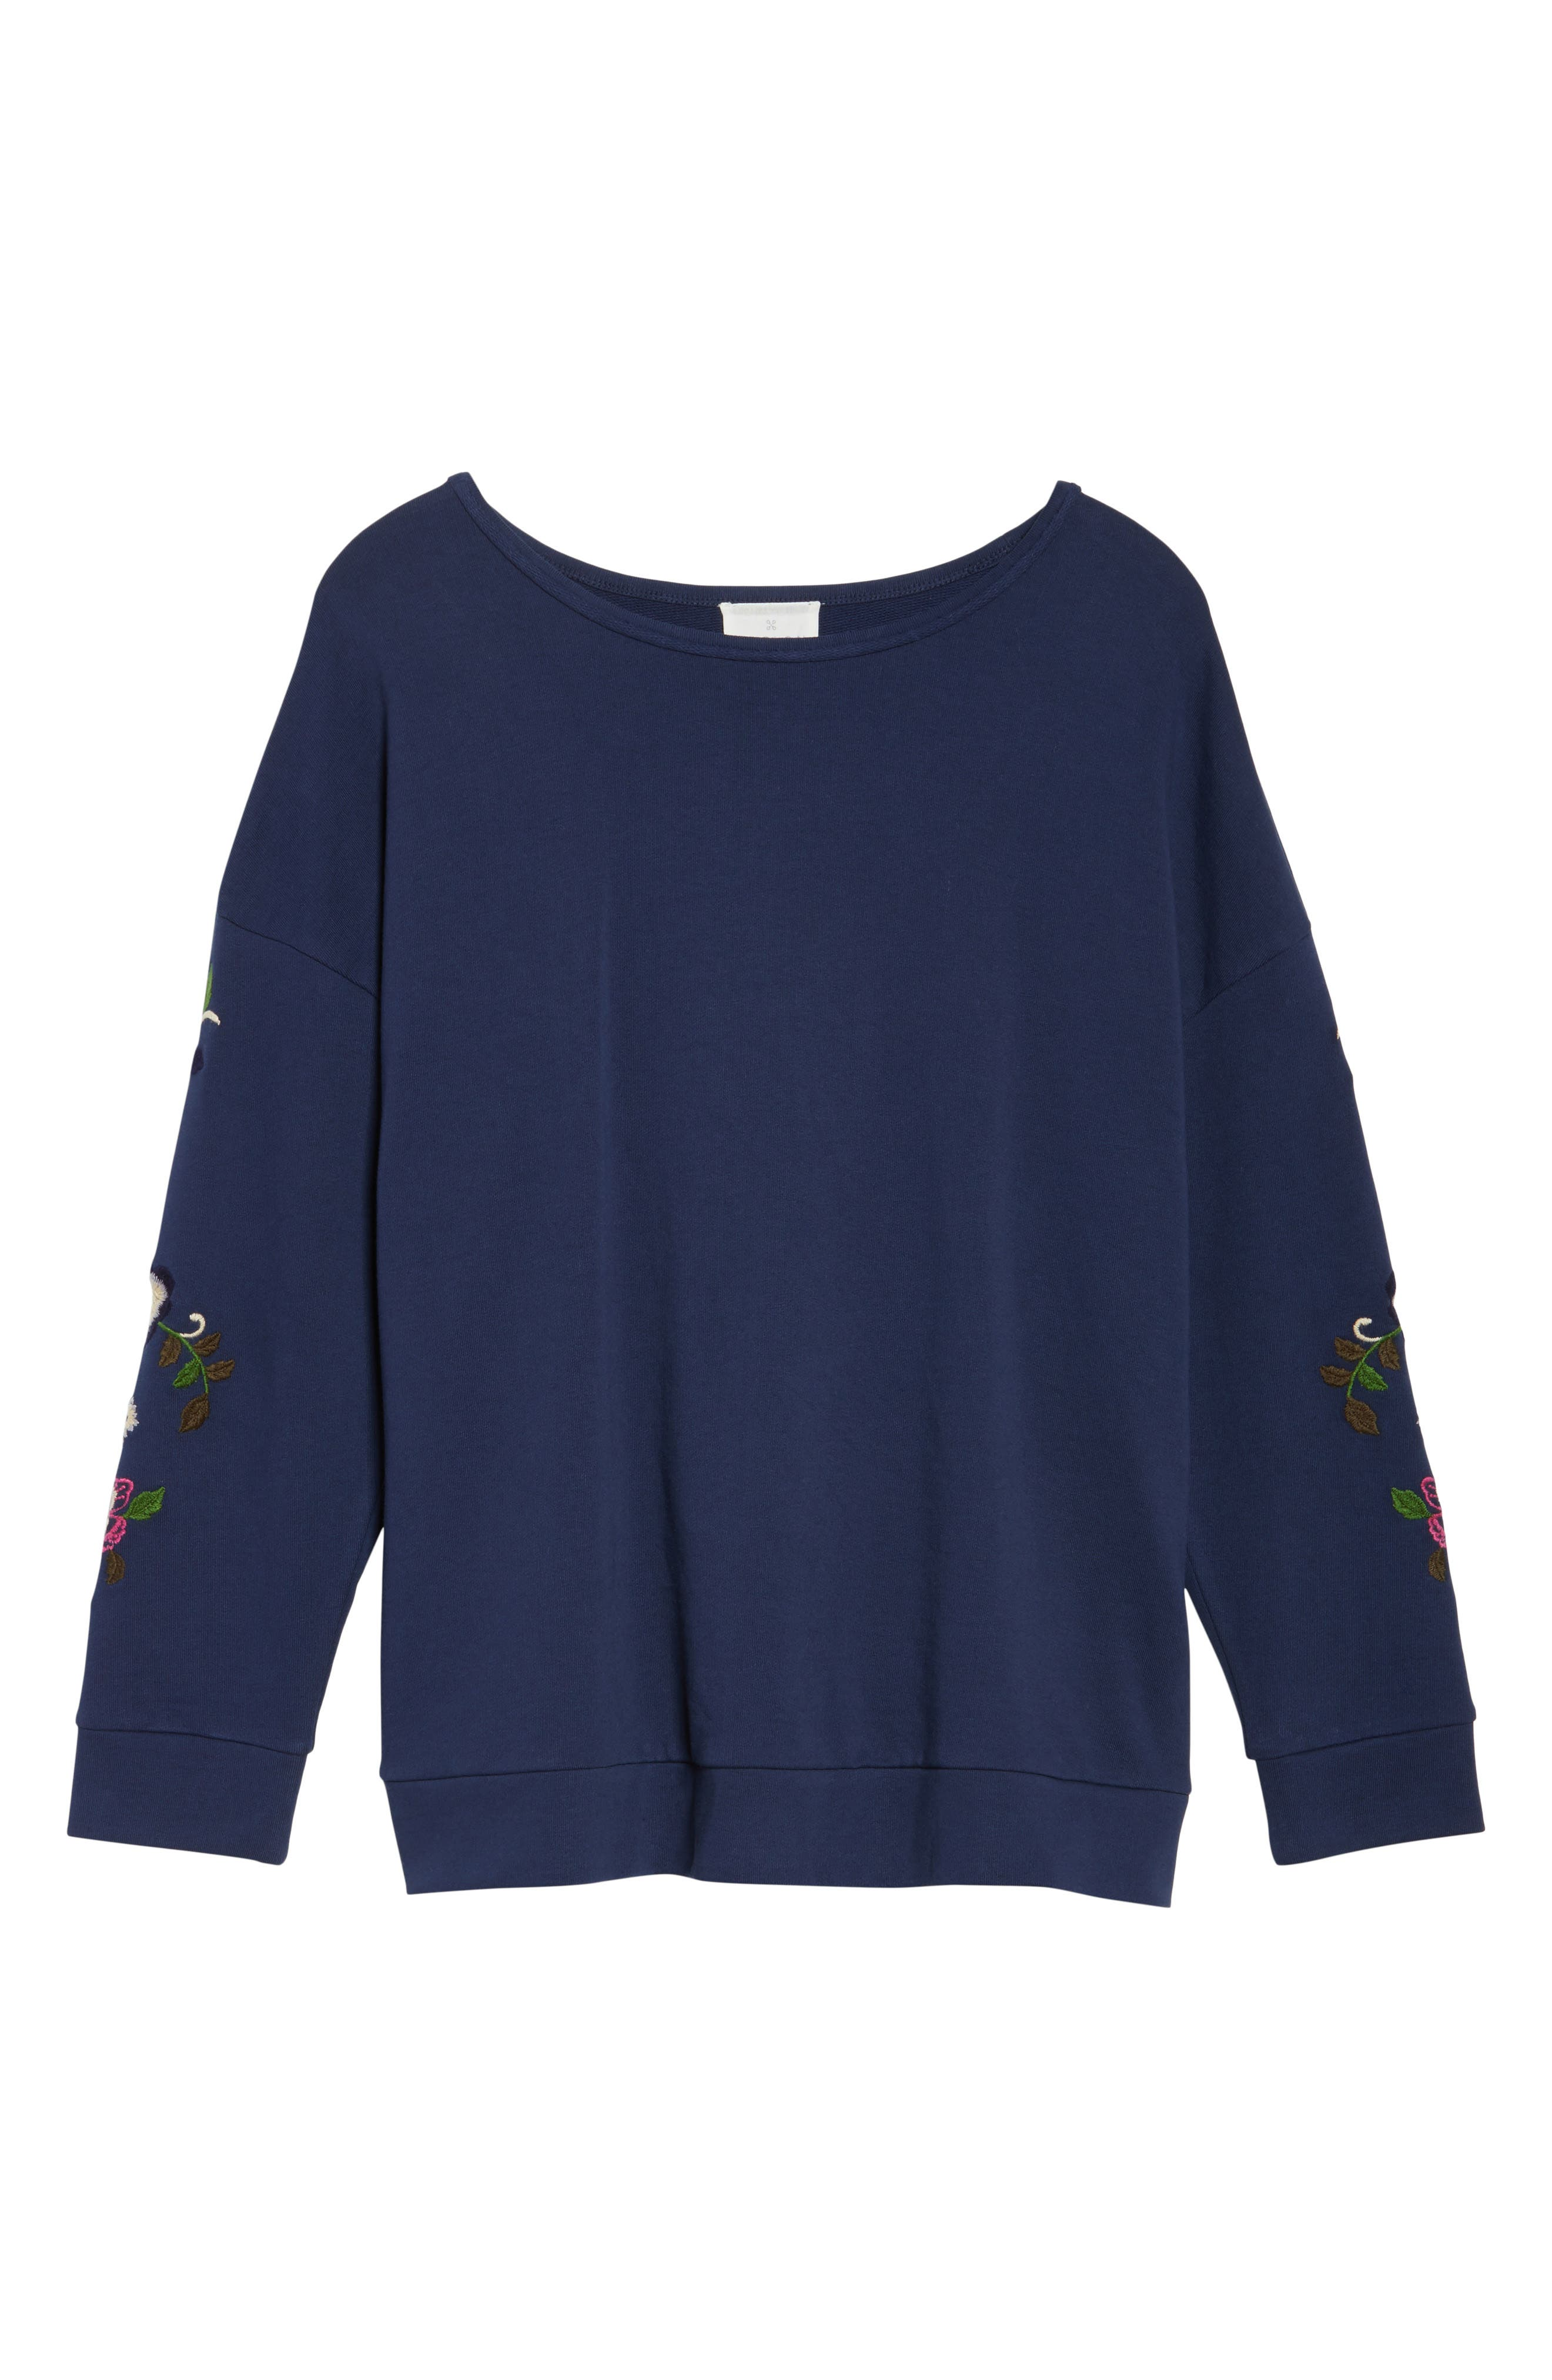 Embroidered Sleeve Sweatshirt,                             Alternate thumbnail 6, color,                             Navy- Rose Floral